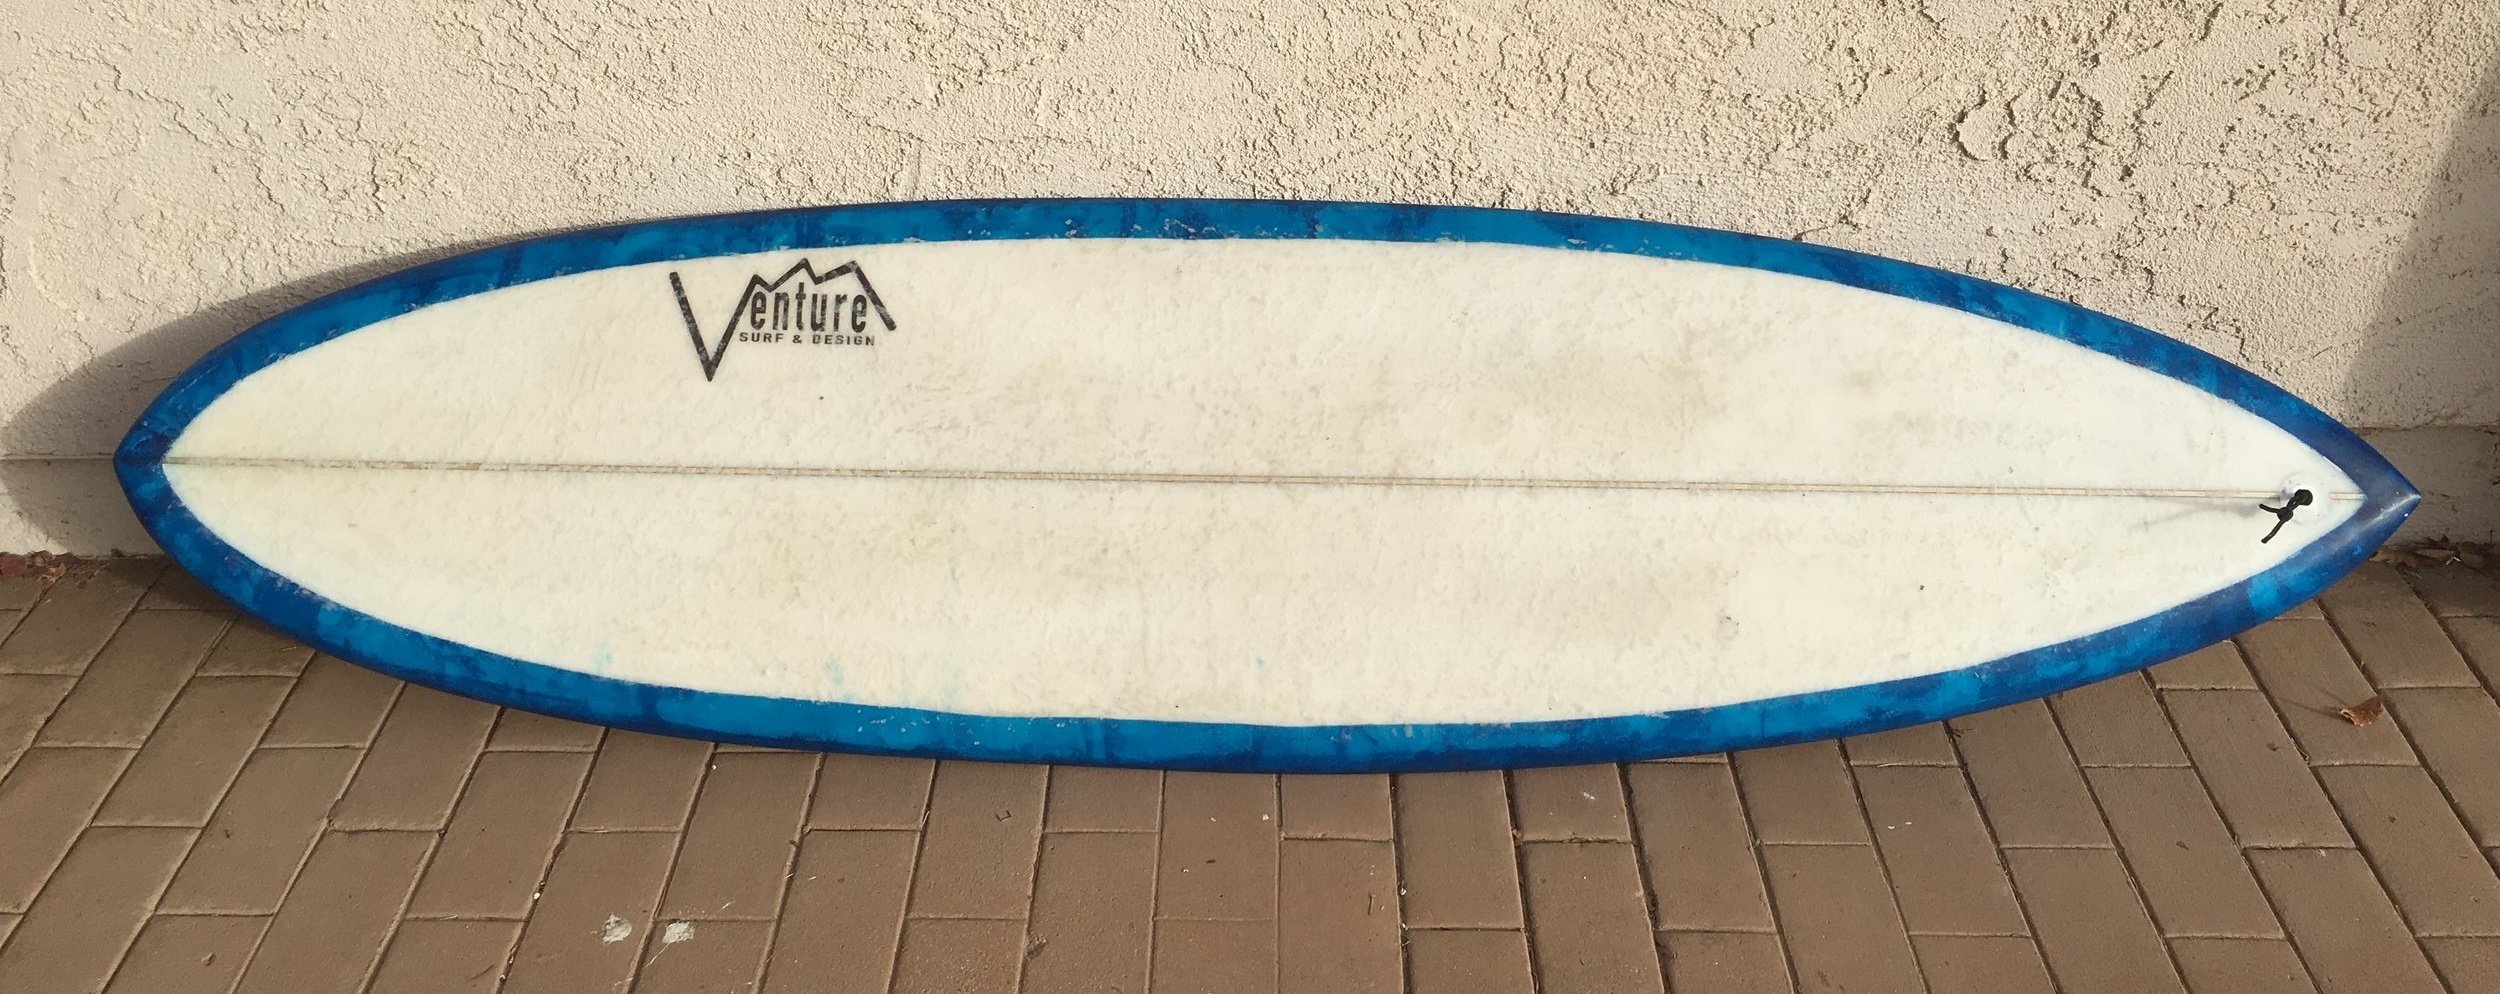 "6'7"" 80.OH quad channel glass on single fin"